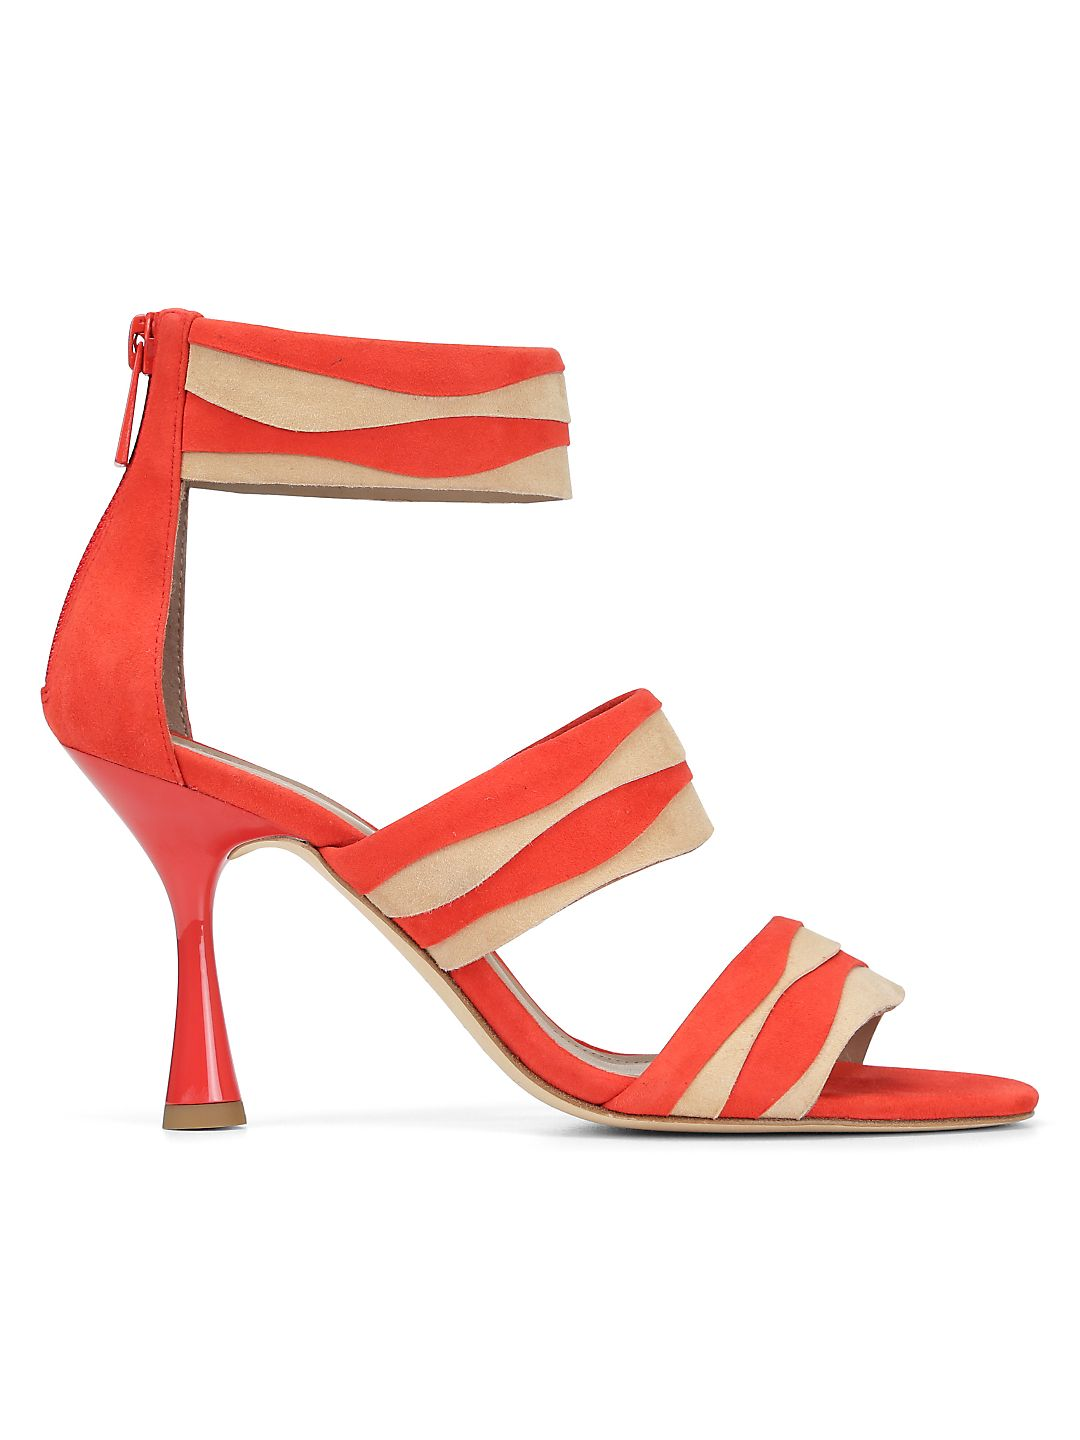 Neav Suede Ankle-Strap Sandals